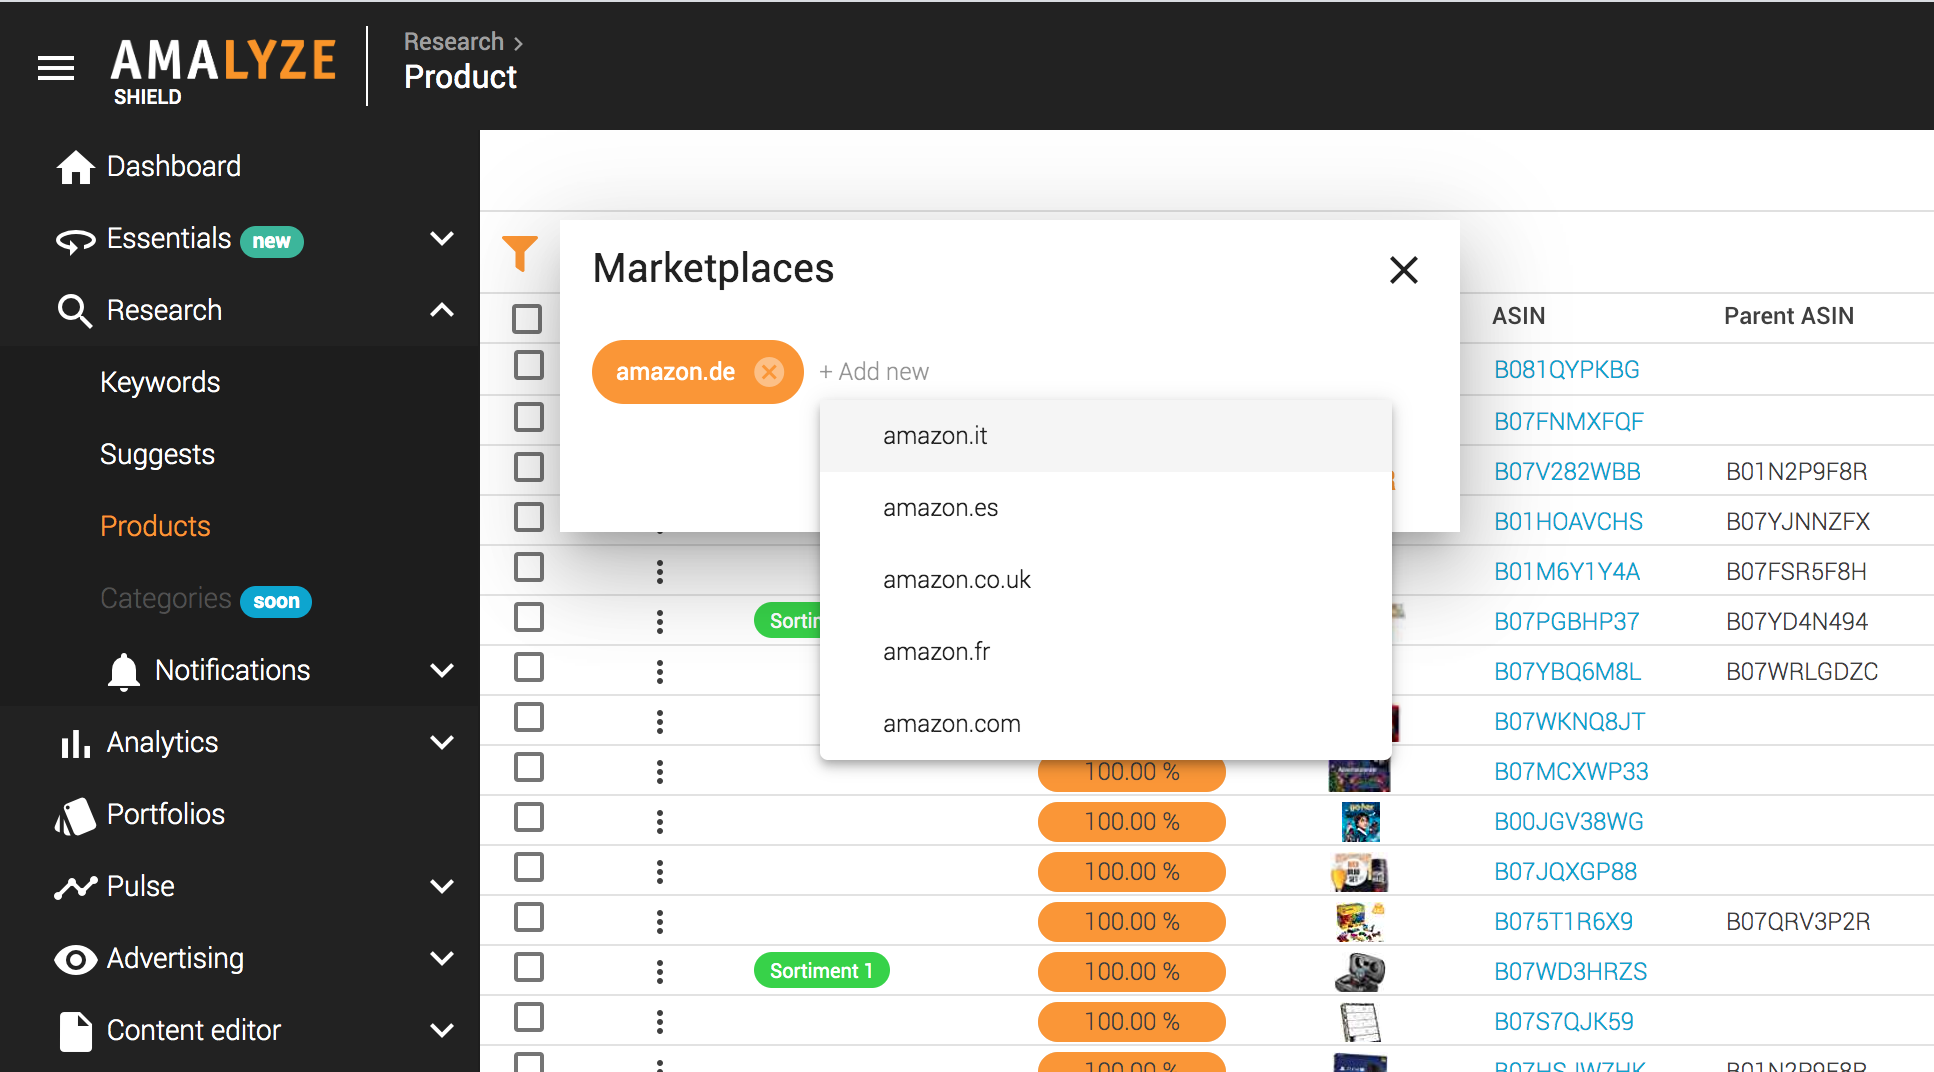 Access more marketplaces to AMALYZE Shield